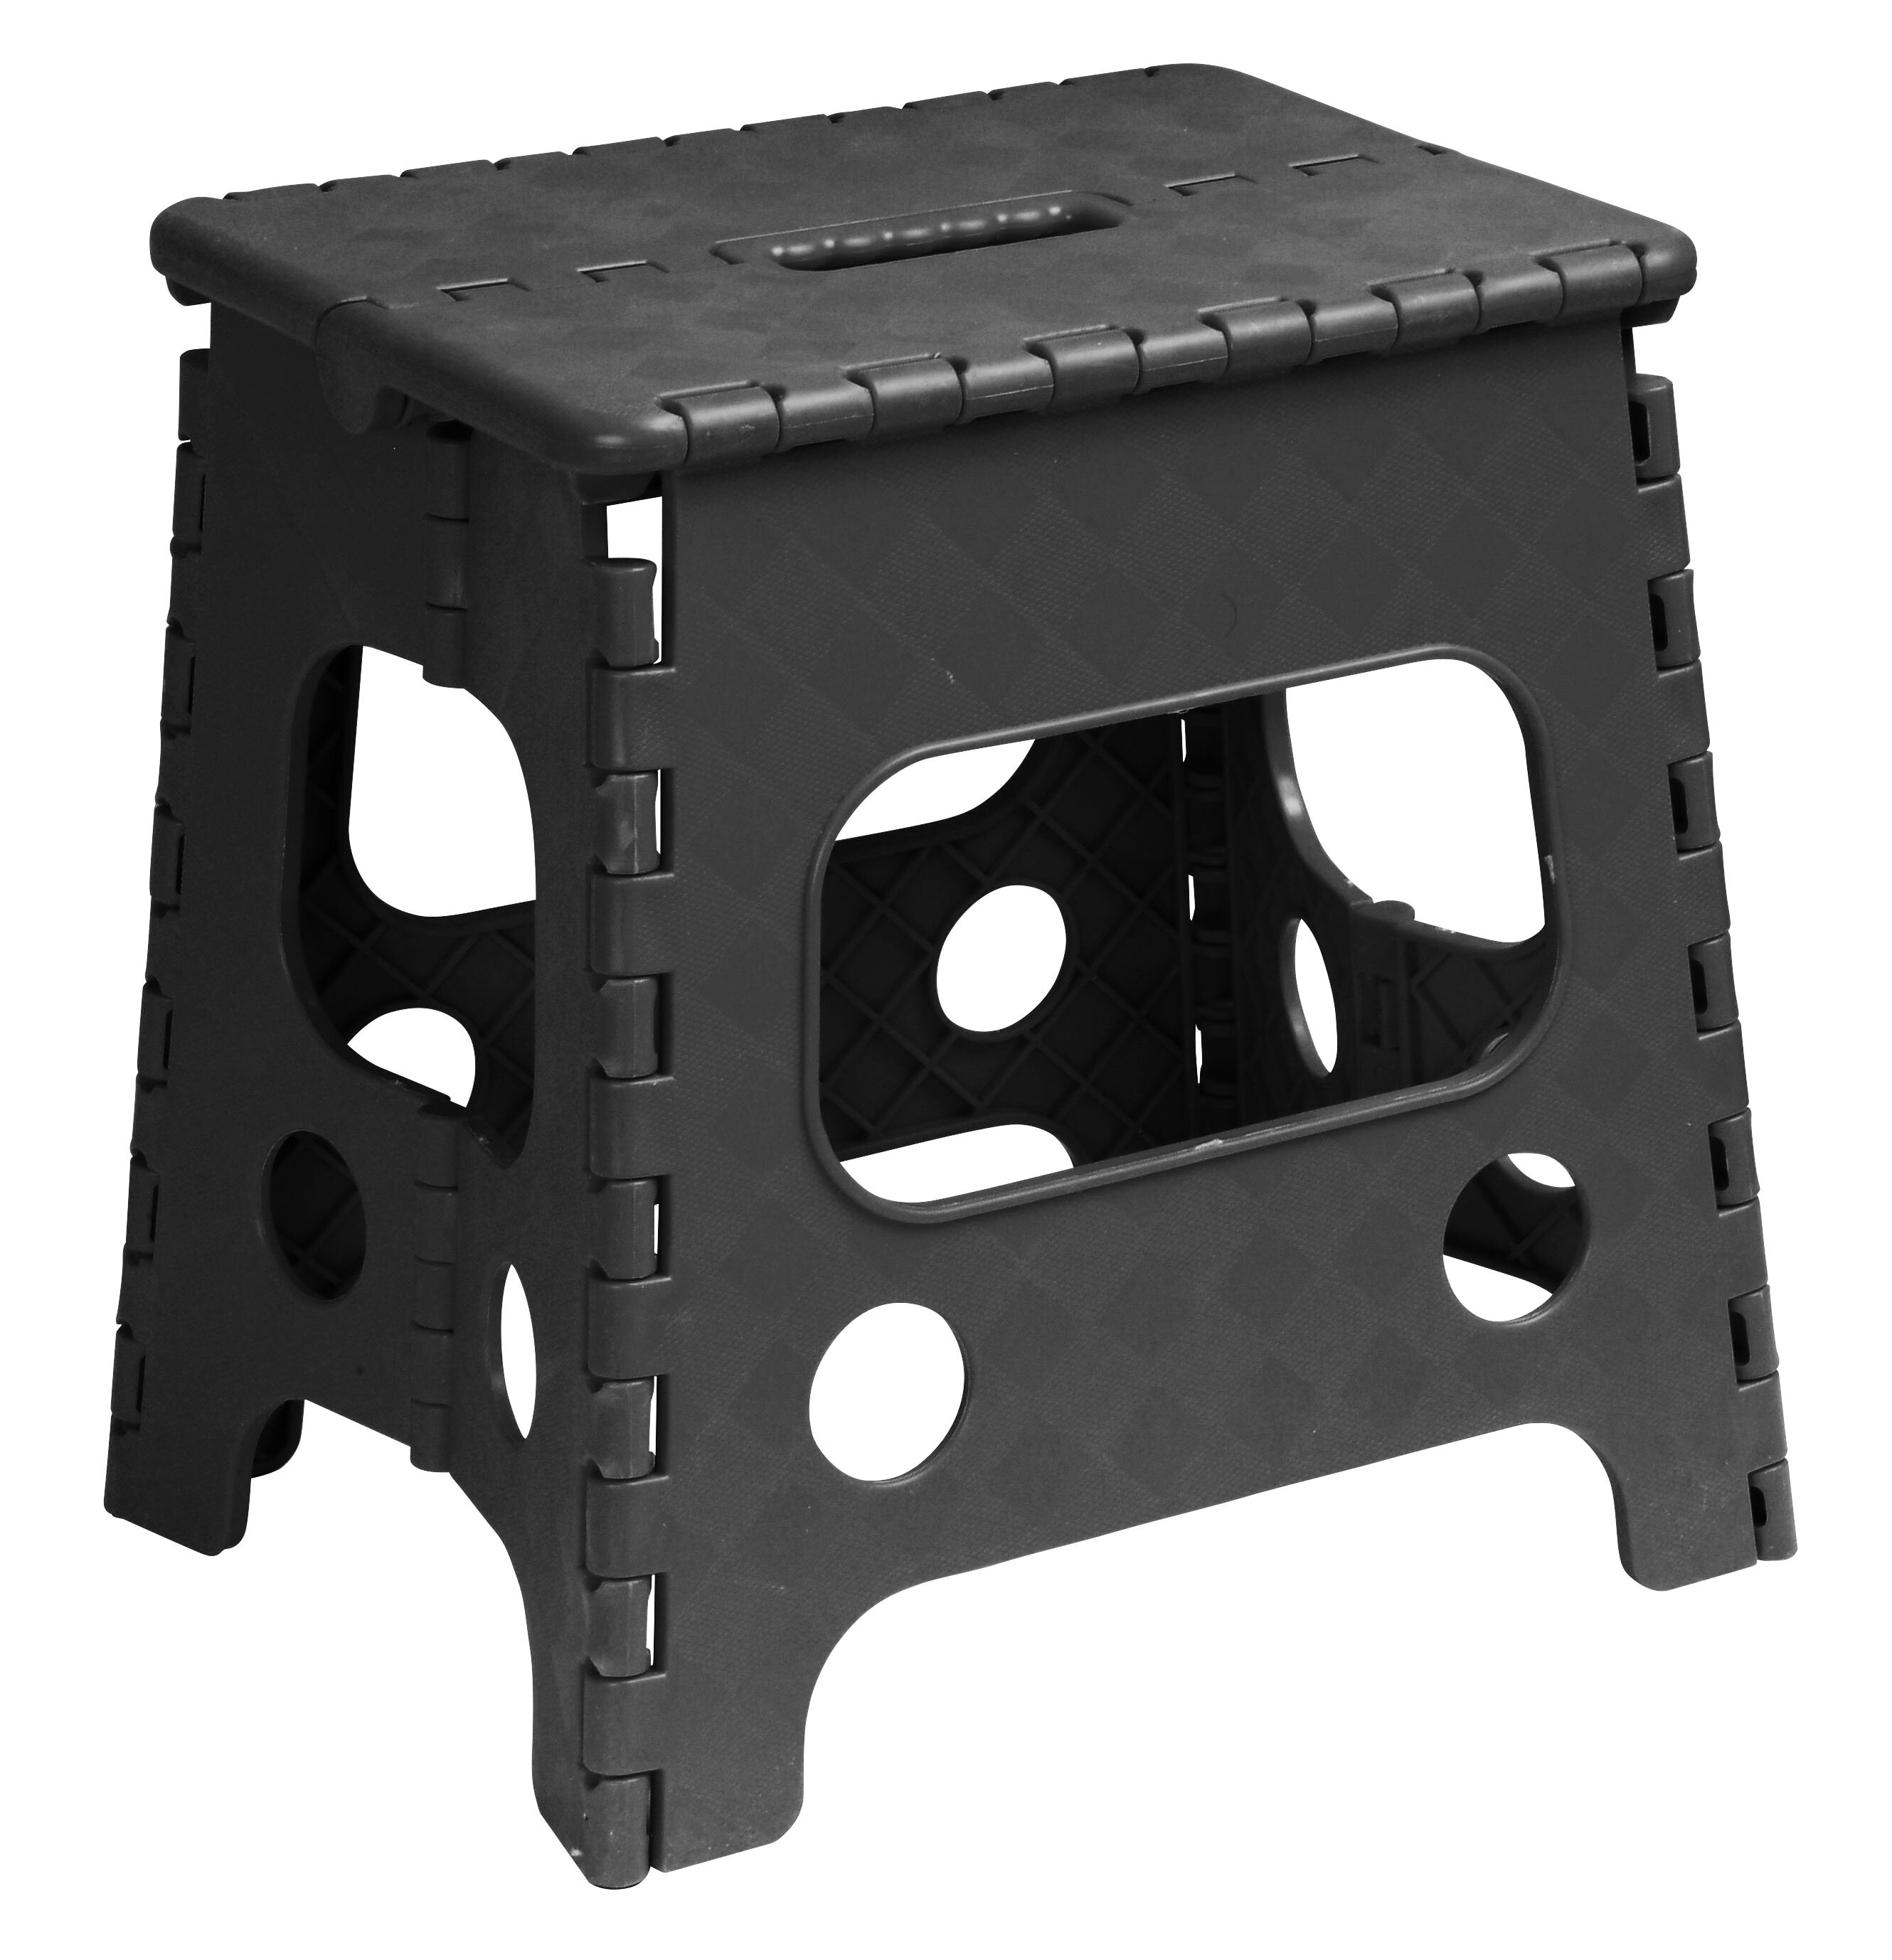 Sensational 1 Step Plastic Step Stool With 300 Lb Load Capacity Ocoug Best Dining Table And Chair Ideas Images Ocougorg